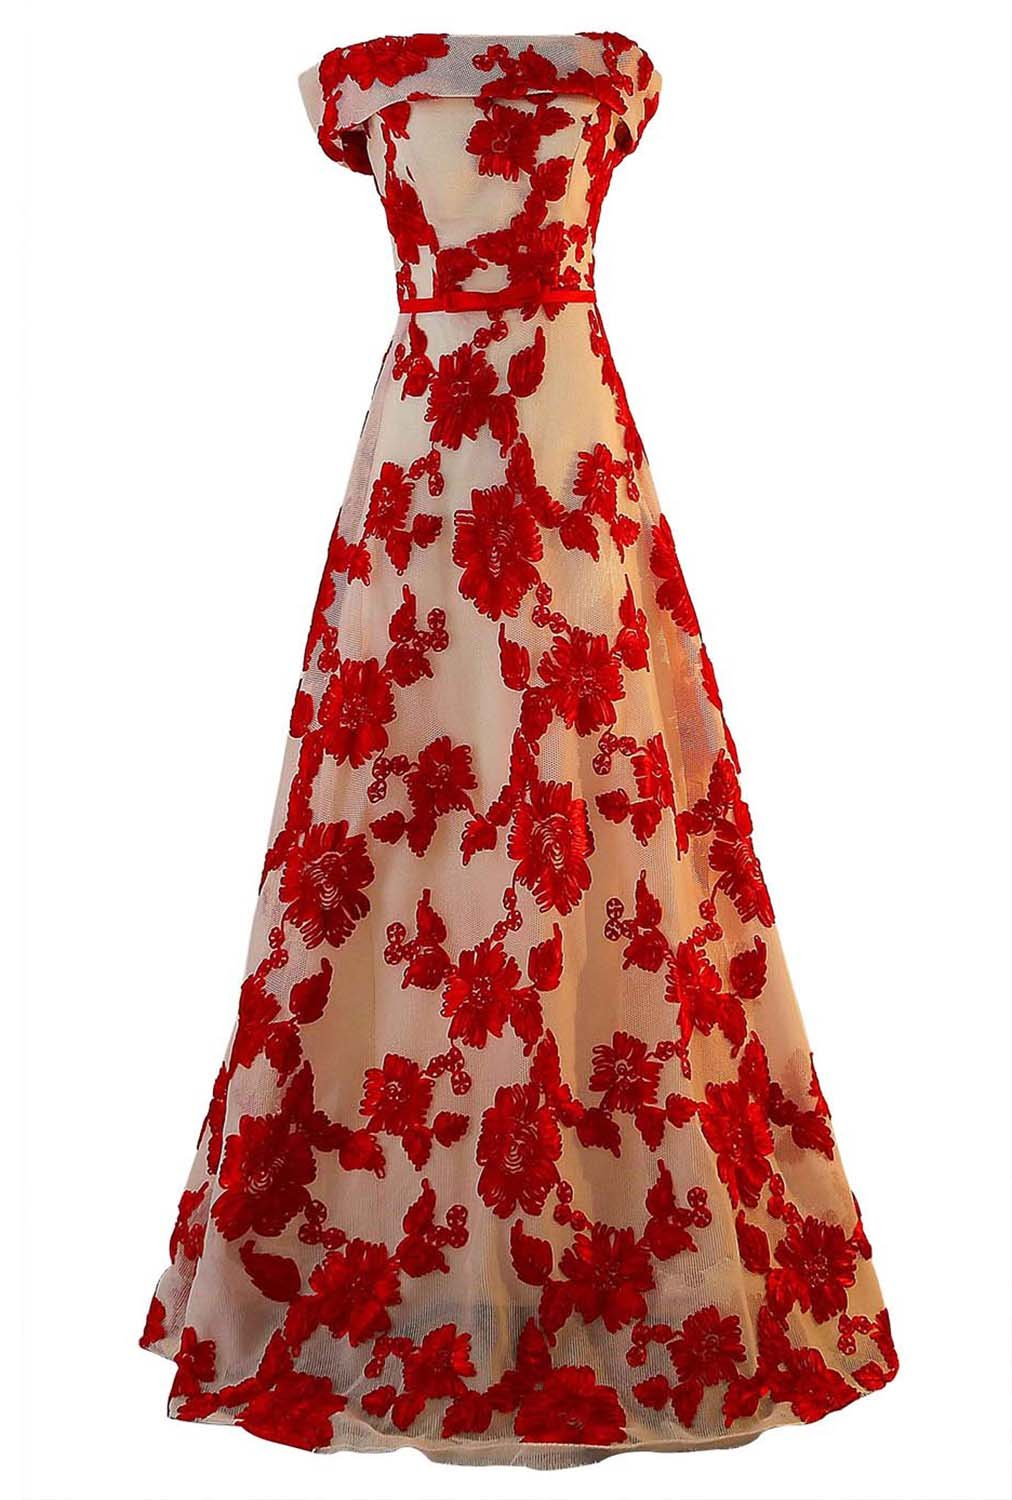 FANHAO Women's Off-The-Shoulder Appliques Lace Waist Sashes Long Evening Prom Dress,Red,M